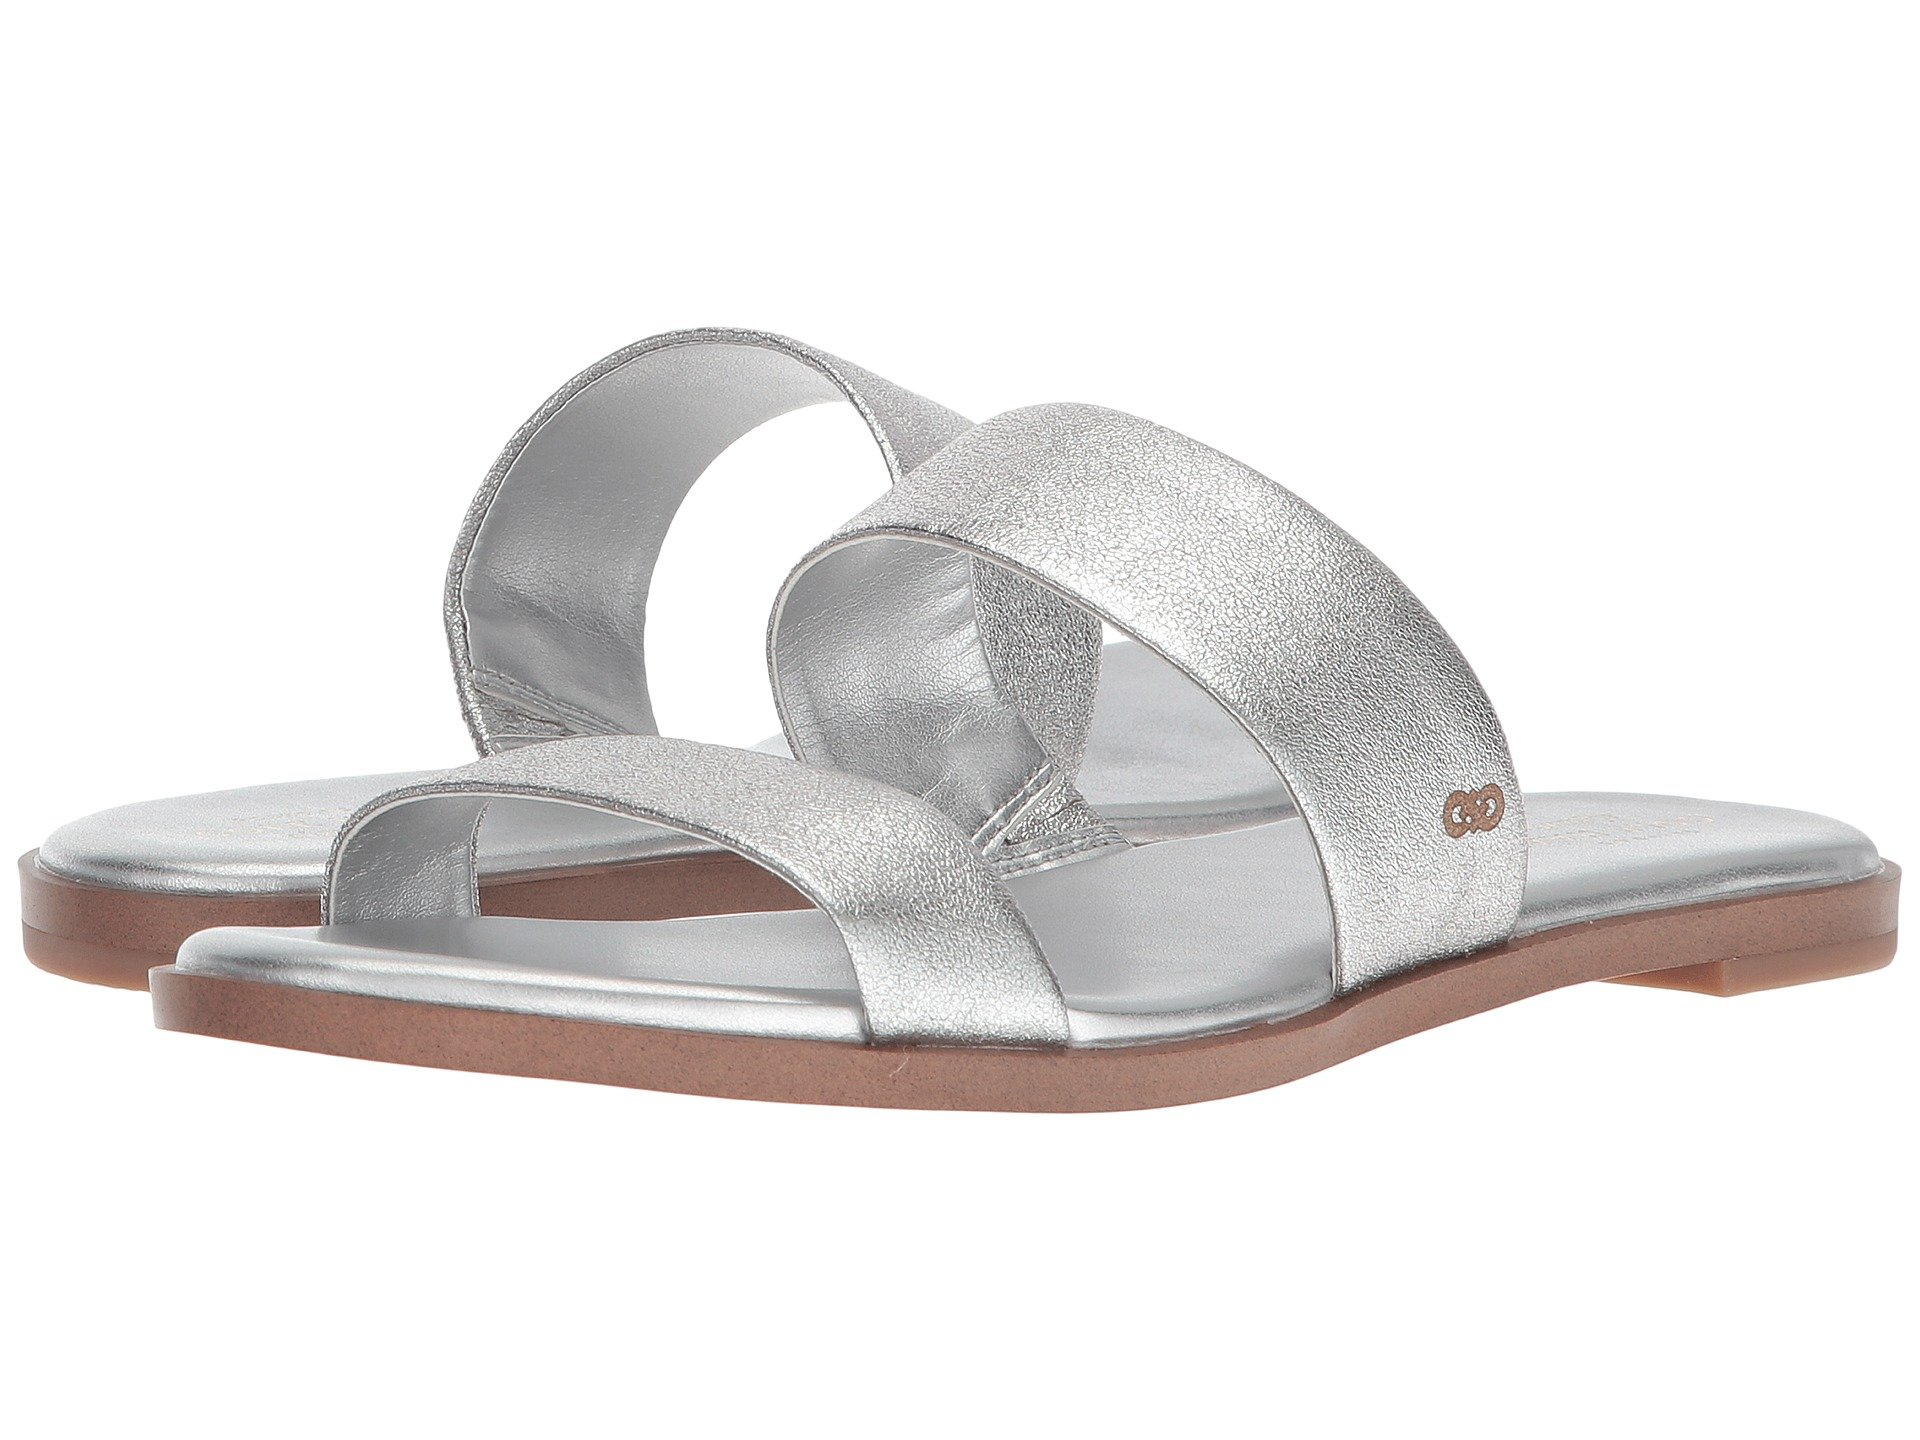 Findra Sandal - Silver Leather